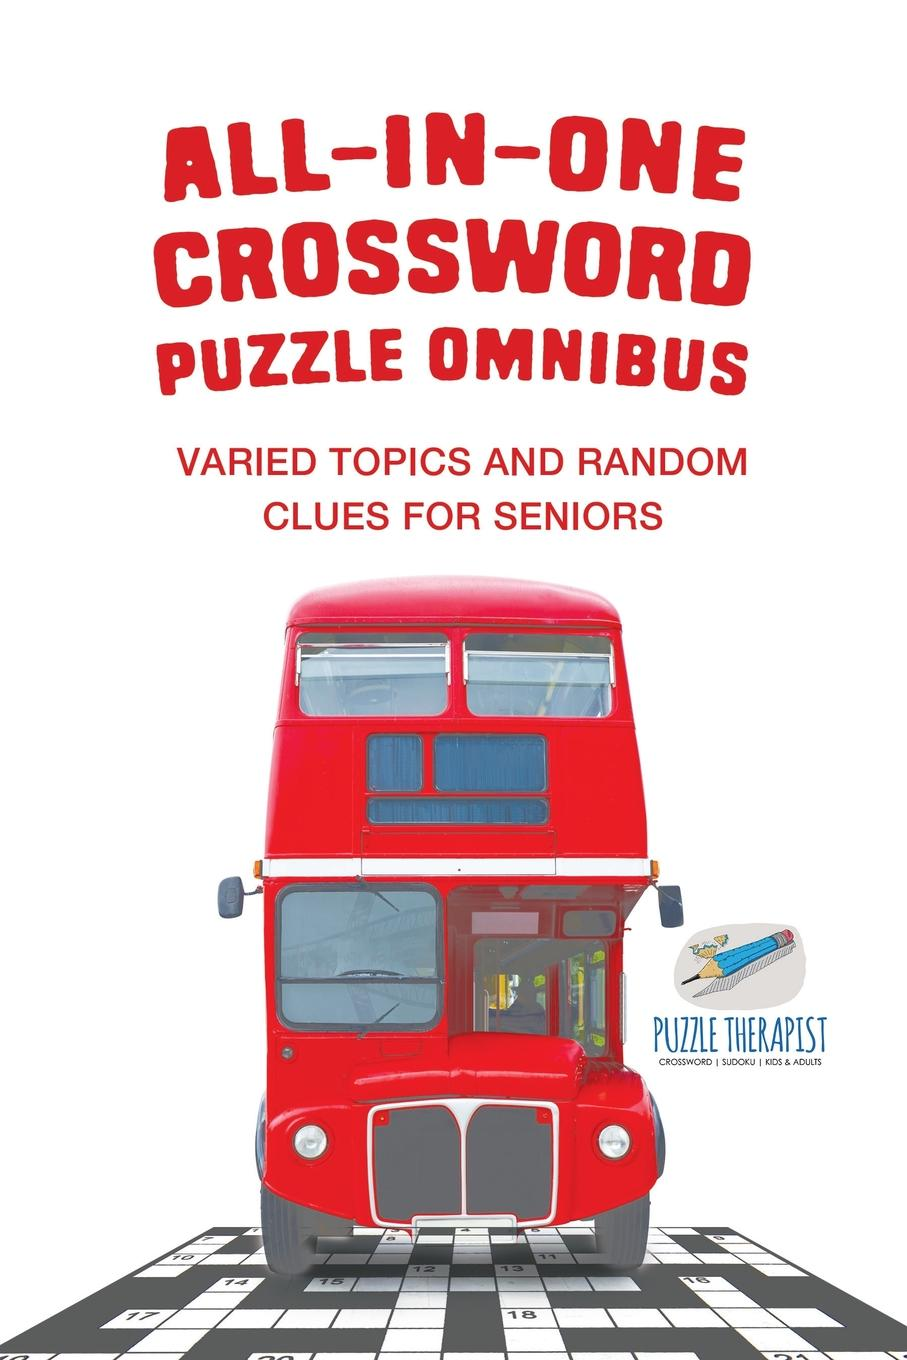 Puzzle Therapist All-in-One Crossword Puzzle Omnibus . Varied Topics and Random Clues for Seniors barrow tzs1 a02 yklzs1 t01 g1 4 white black silver gold acrylic water cooling plug coins can be used to twist the